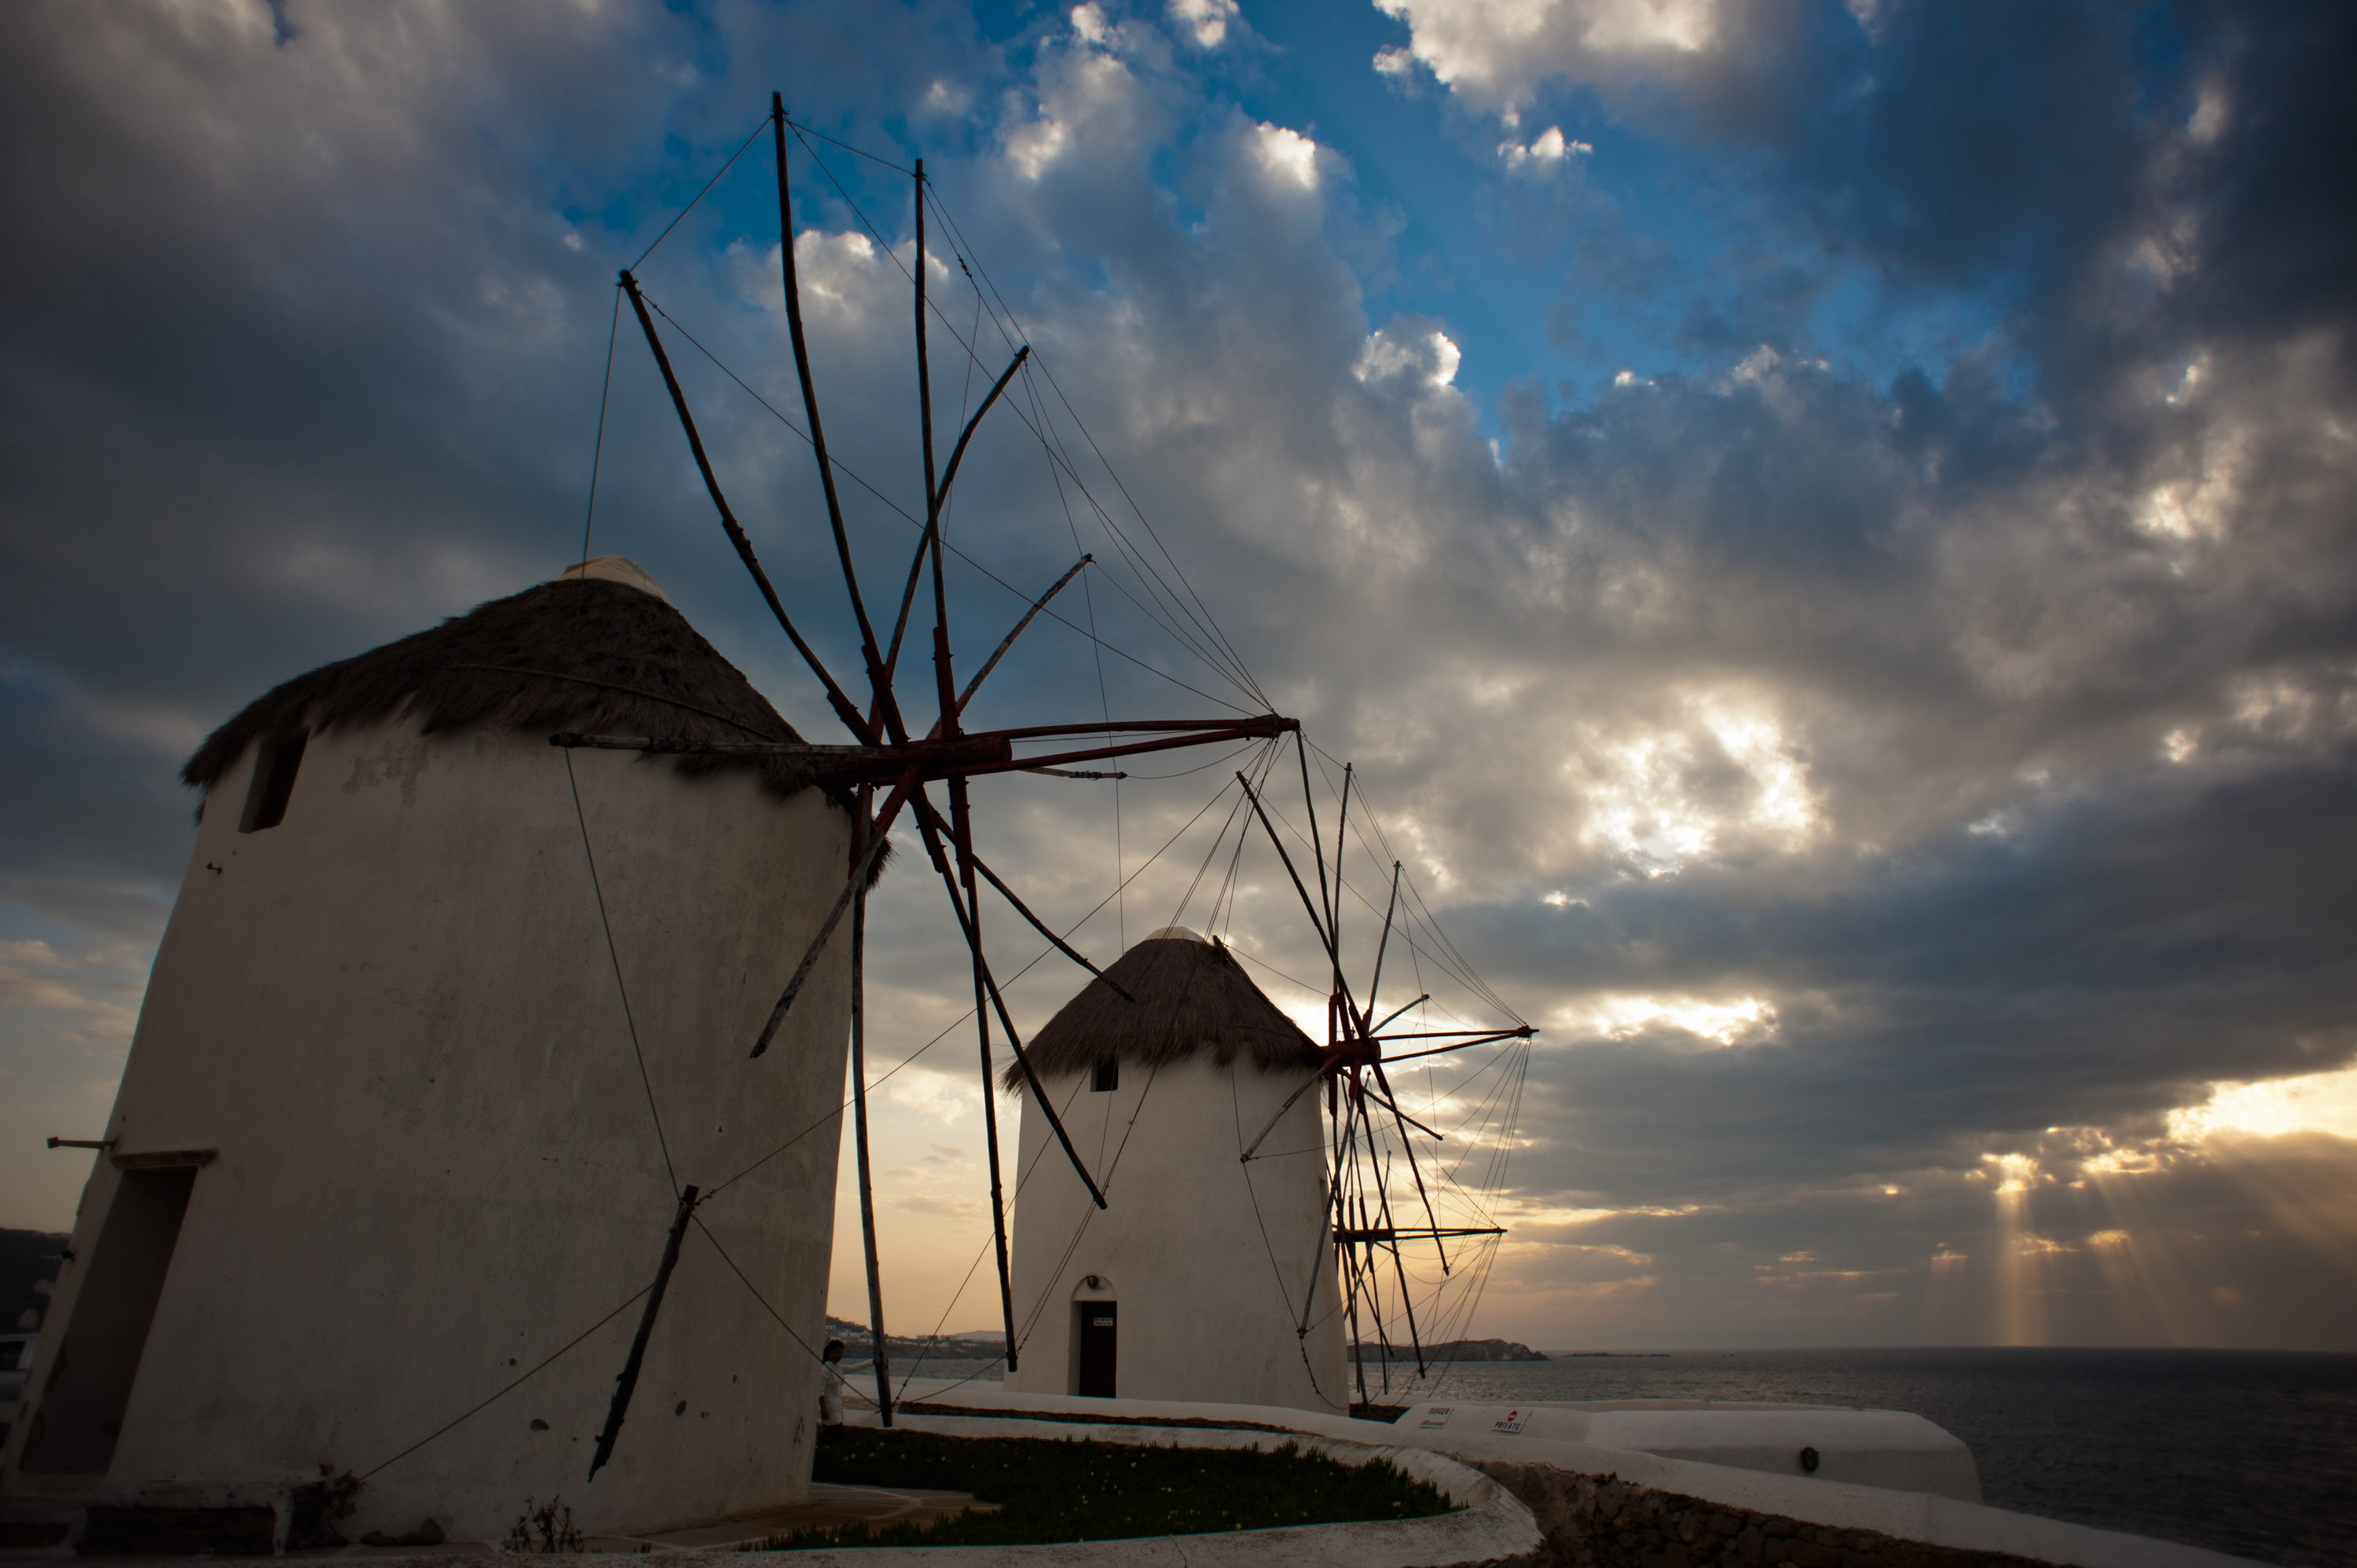 Windmills_of_the_Mykonos Island,Chora, Cyclades,Agean Sea,Greece